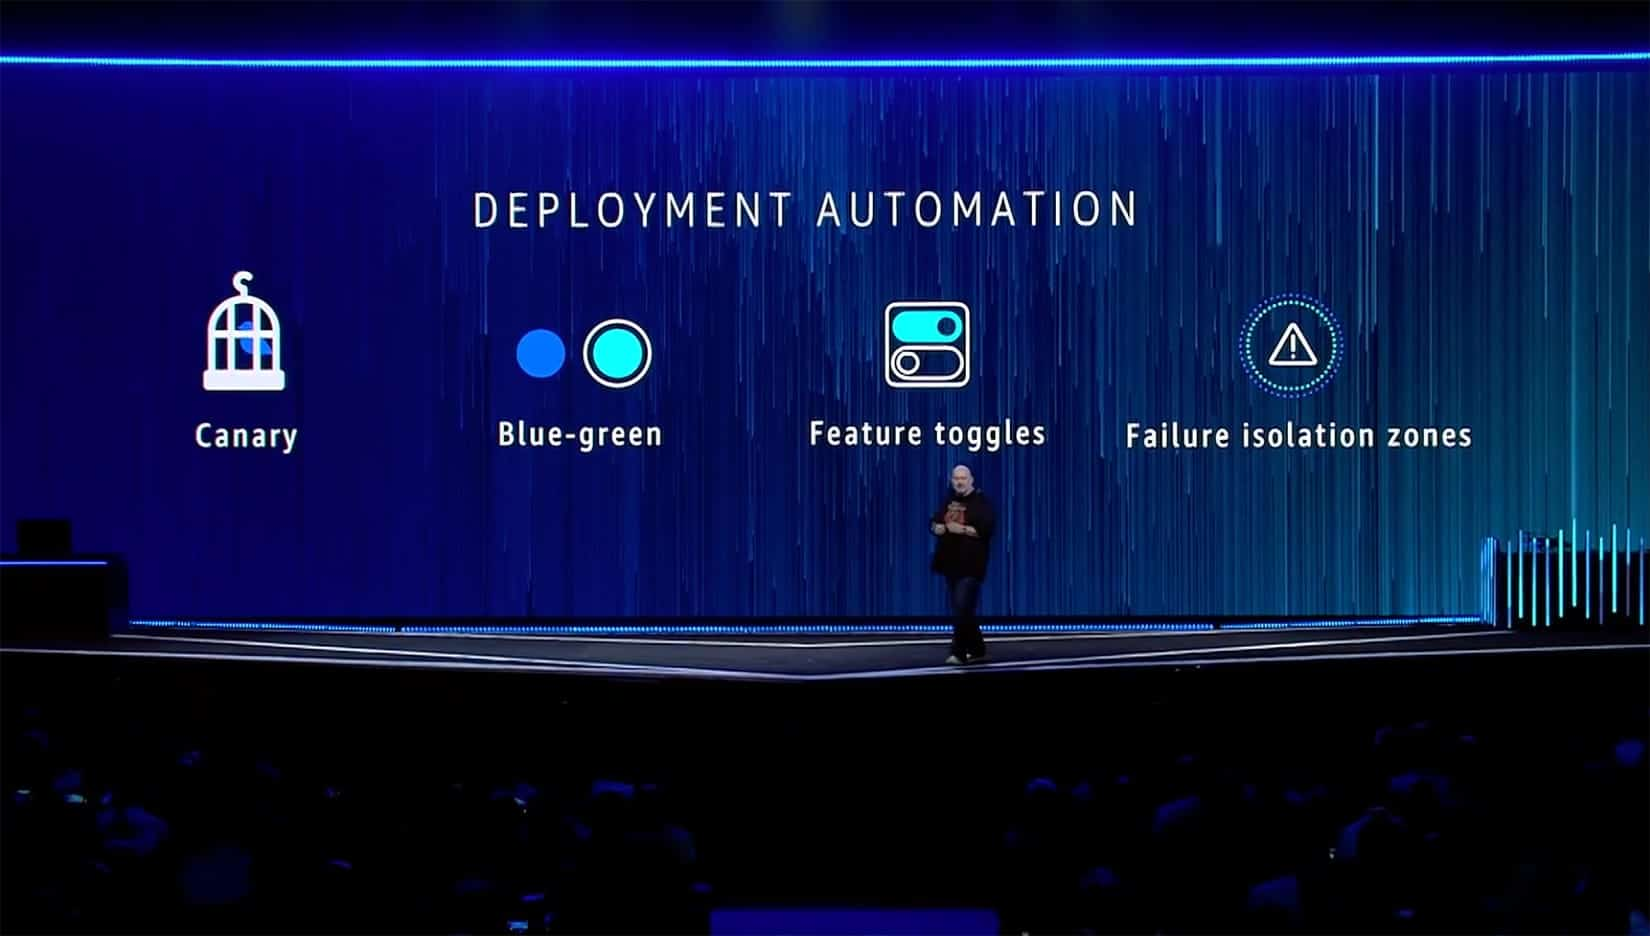 Amazon covered feature flags during their keynote at AWS re:Invent